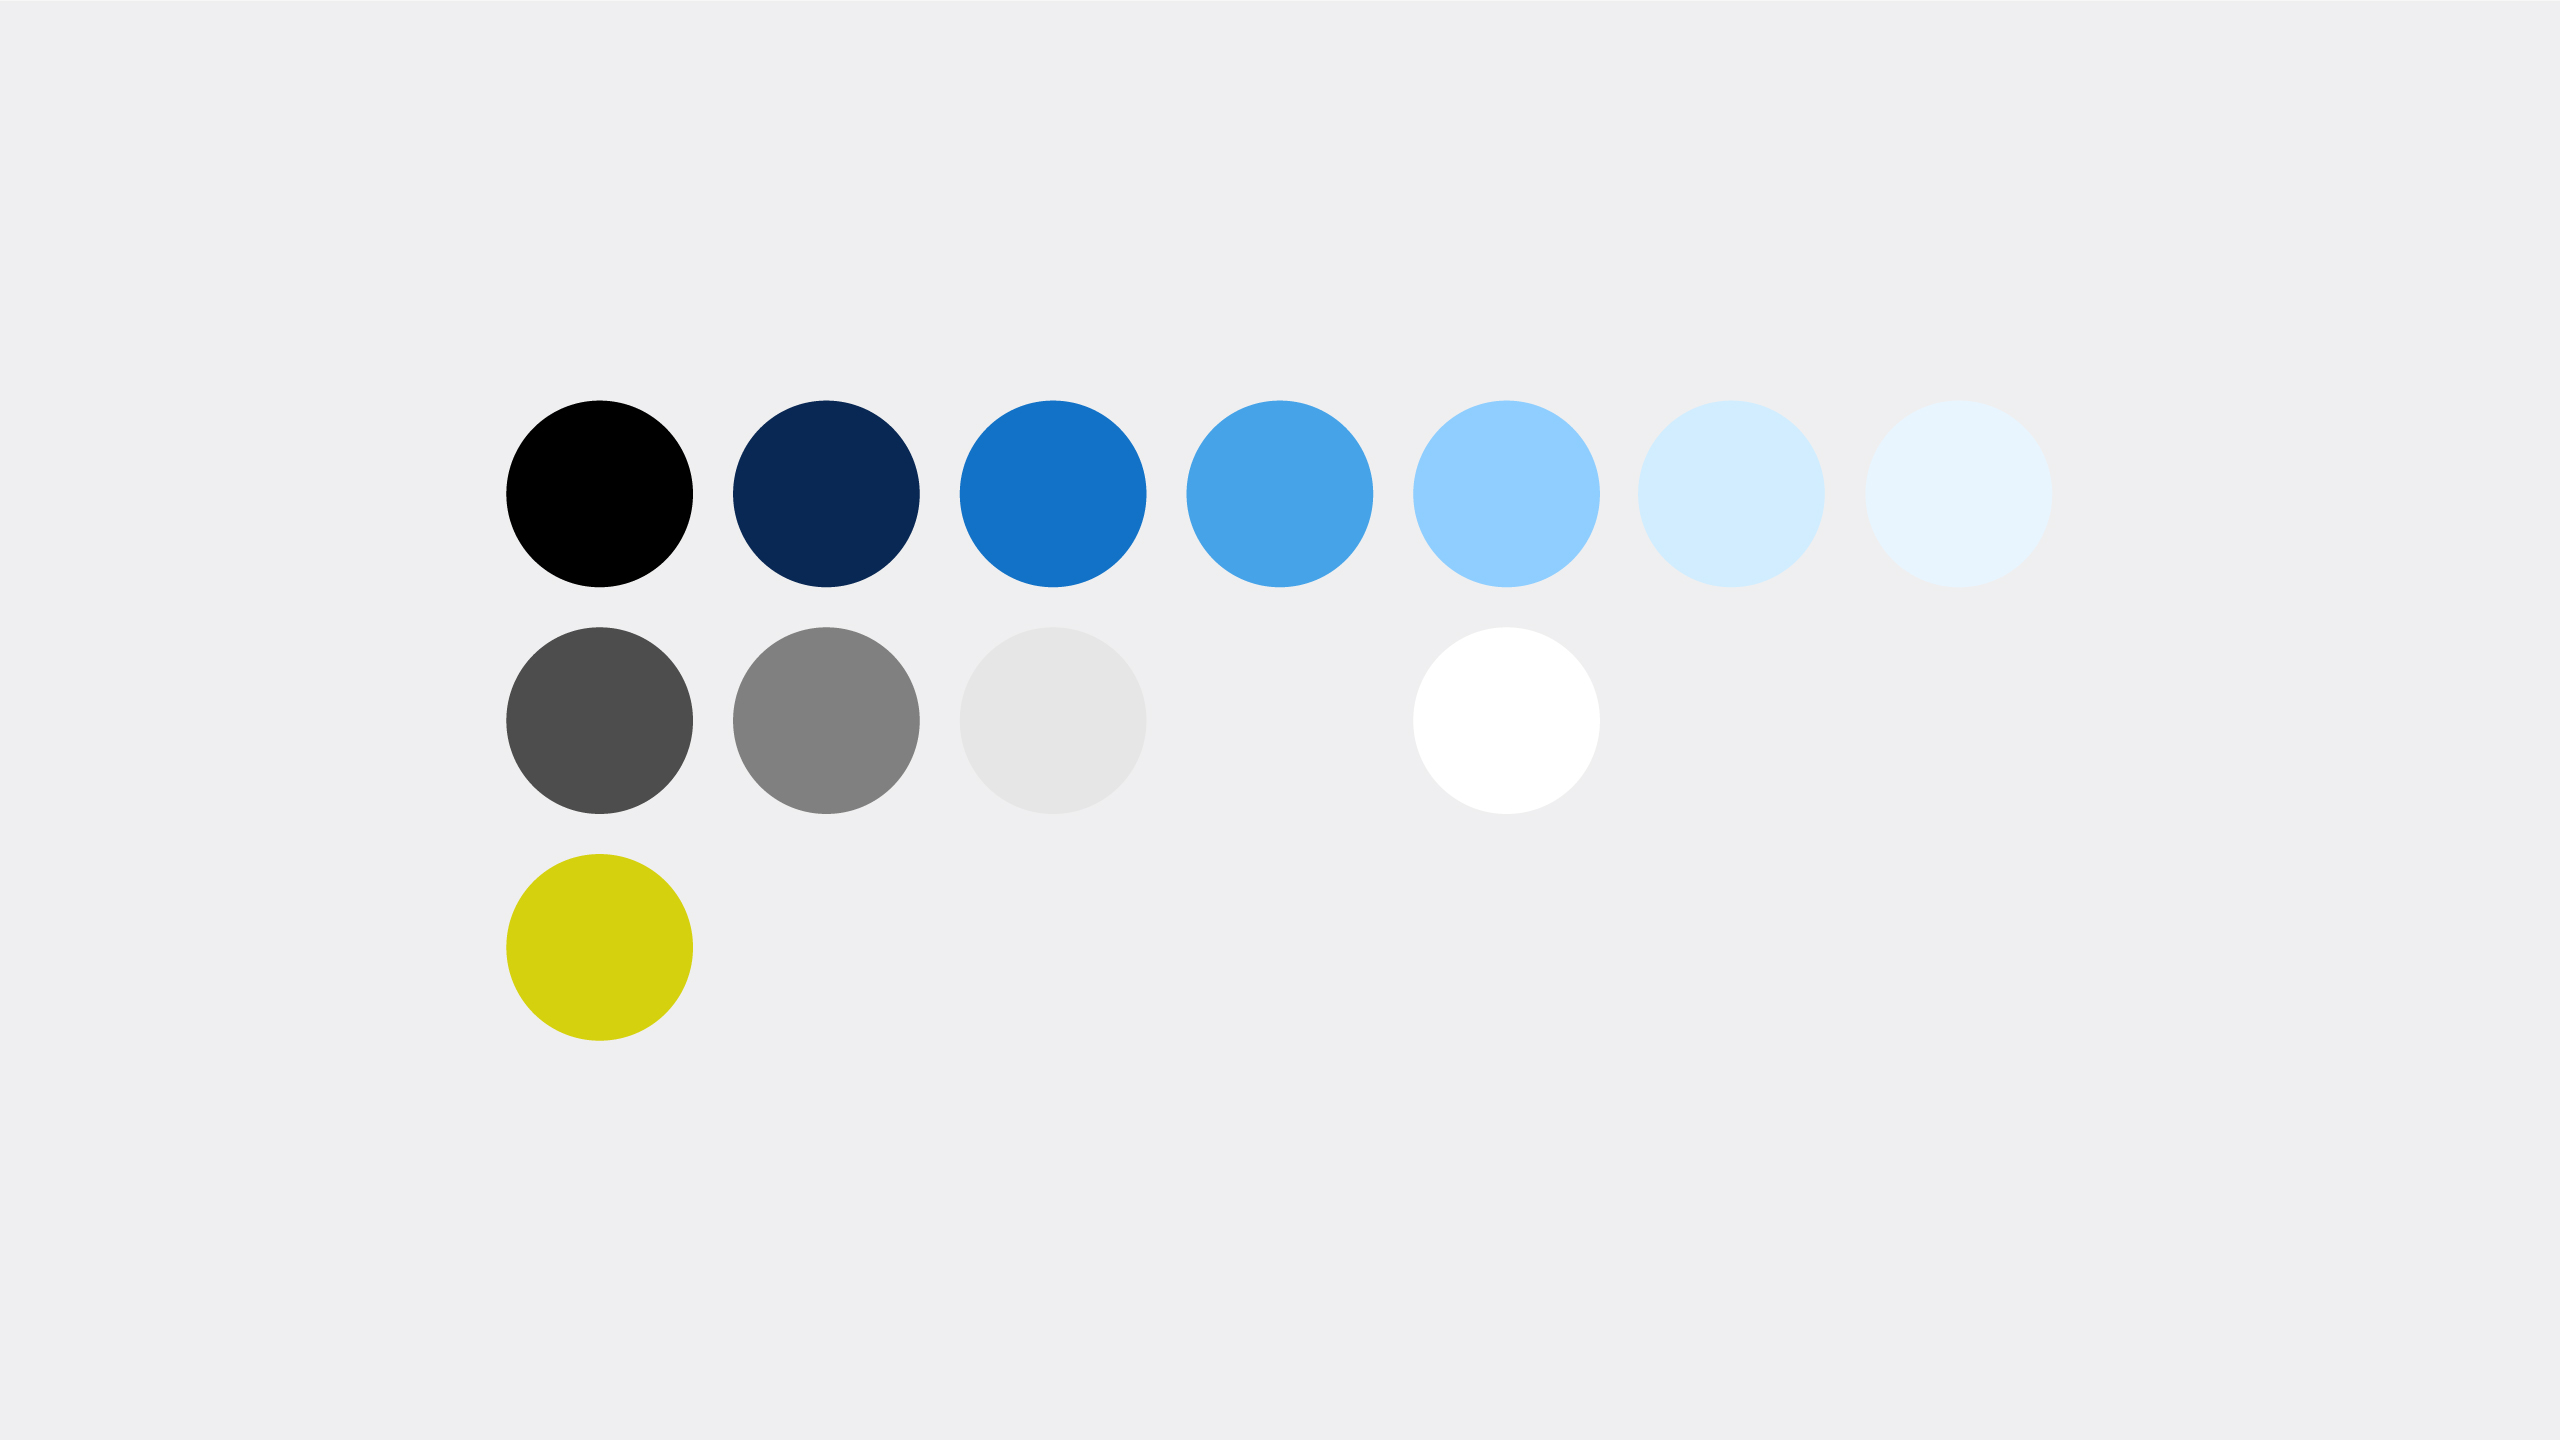 Colour palette definition for consistent branding across brand touch points